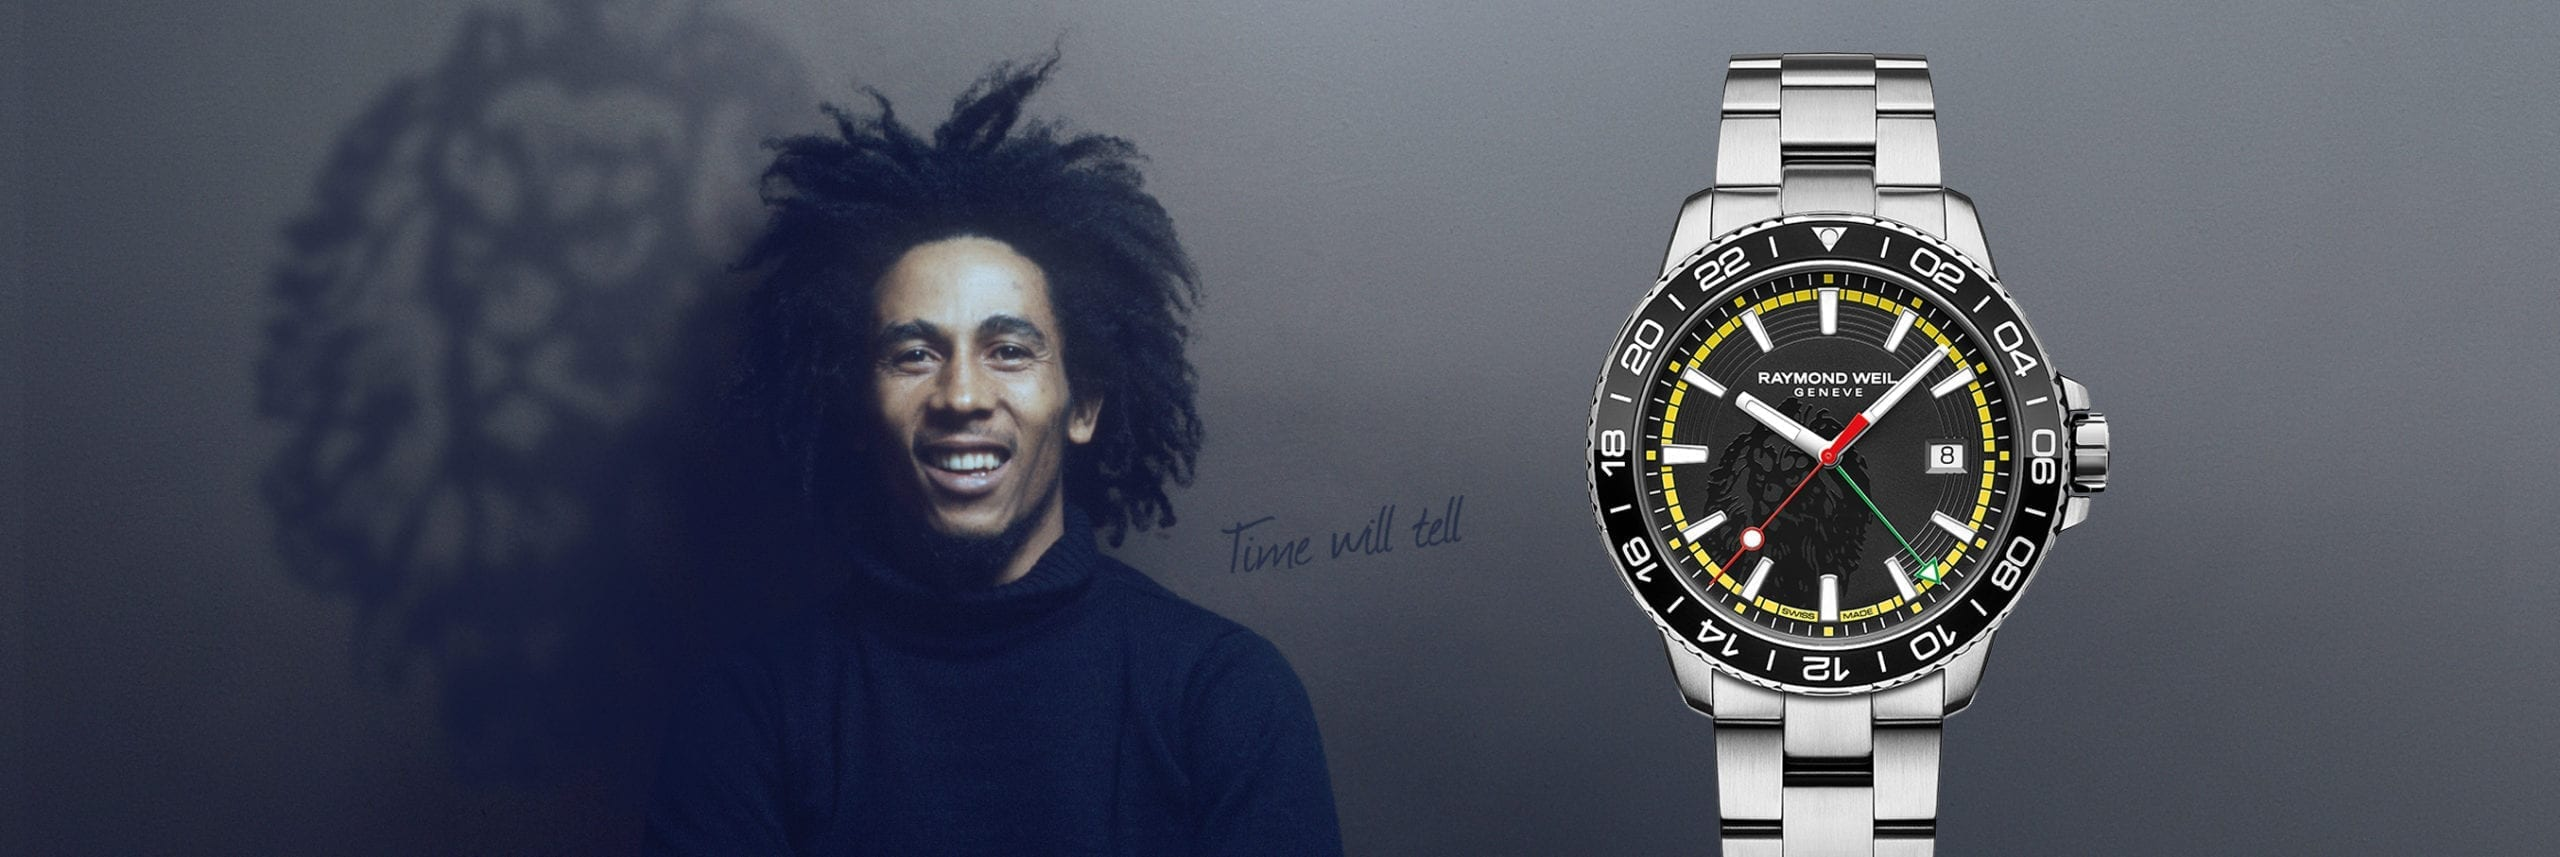 RAYMOND WEIL | Bob Marley Limited Edition Raymond Weil Tango Luxury Watch - Pack Shot Image